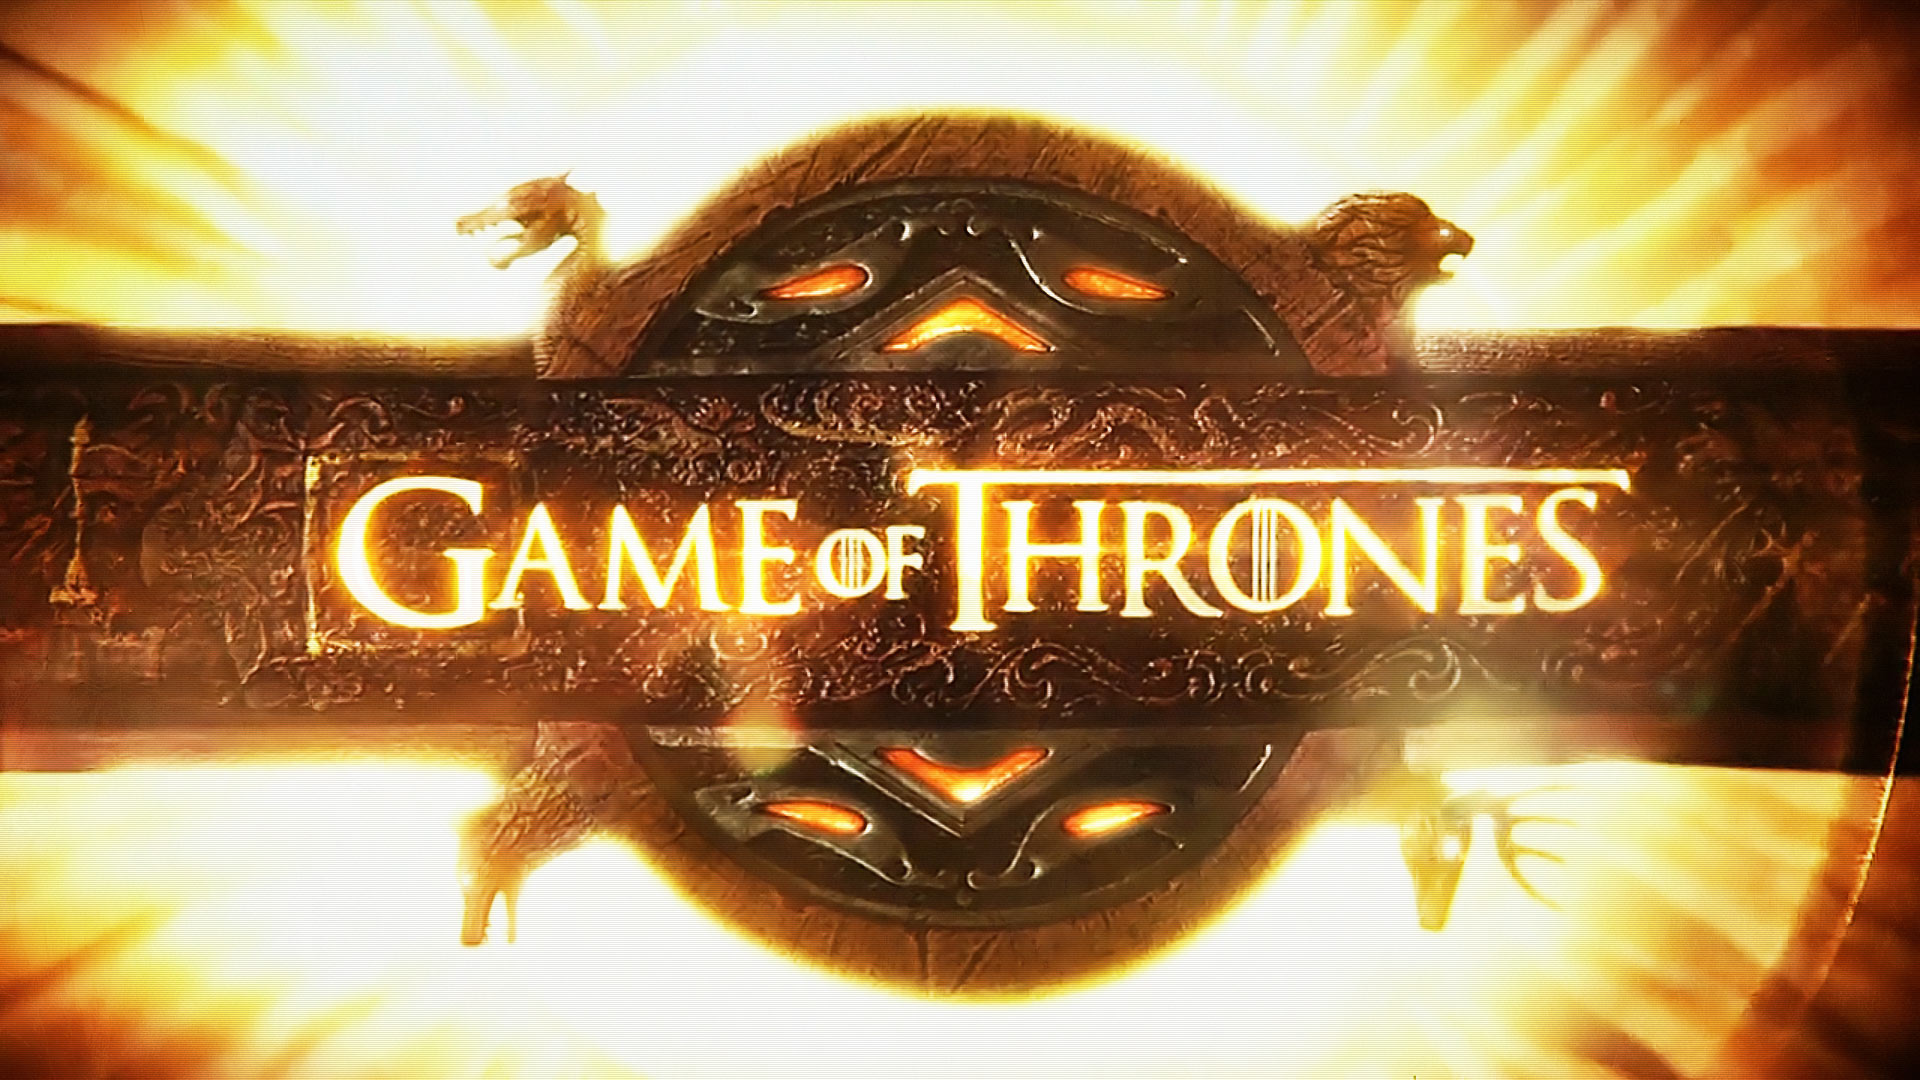 First Trailer For Game Of Thrones Season 5